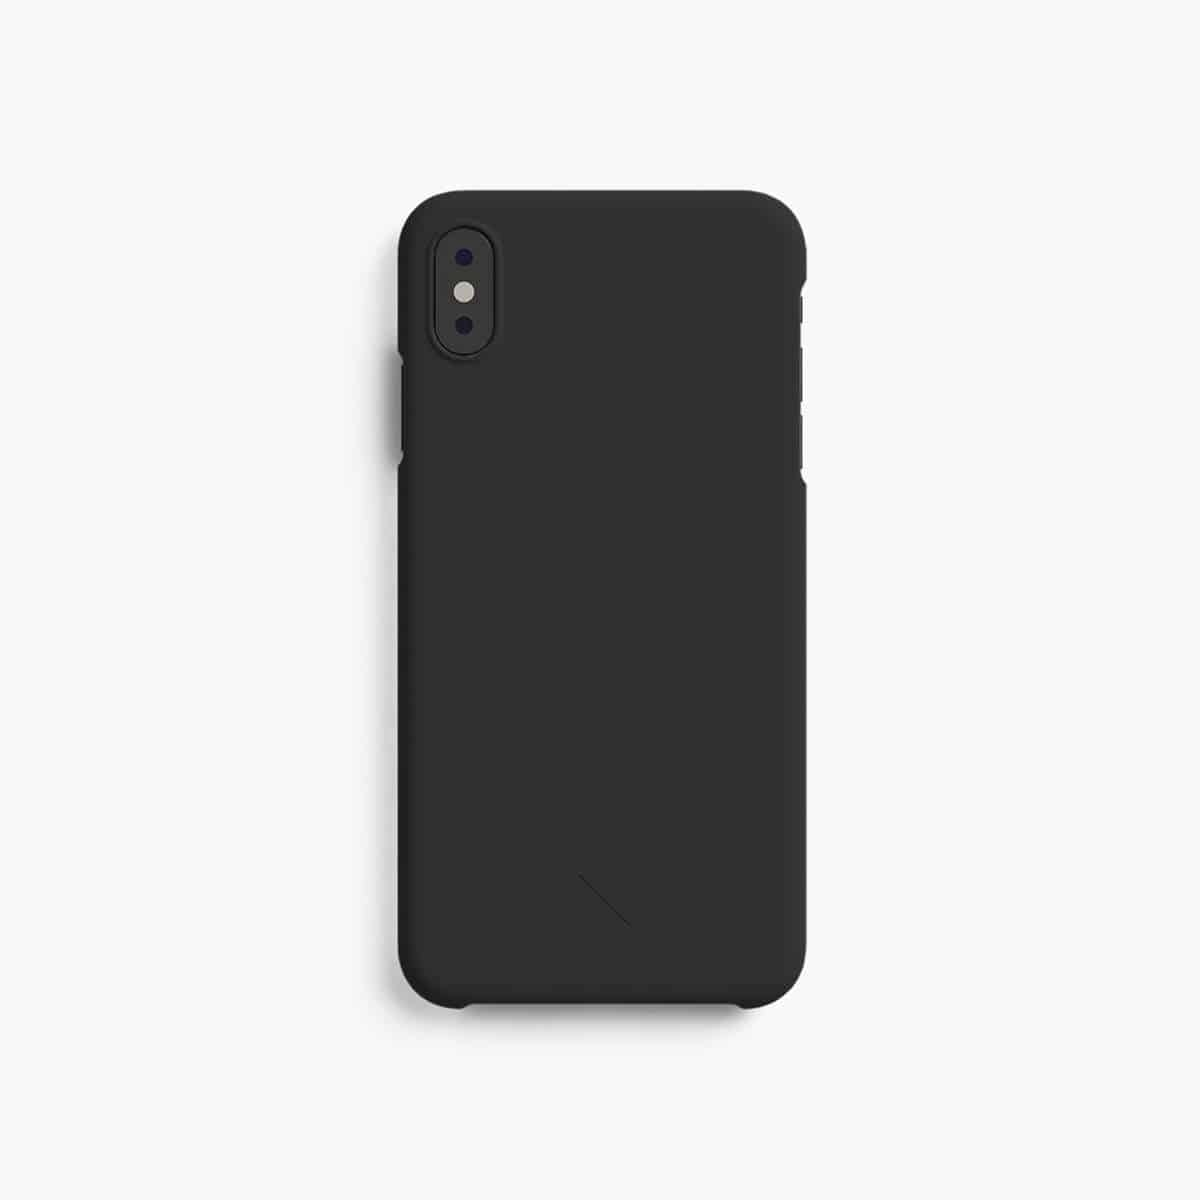 A Good Company cover – Charcoal Black – iPhone XS Max